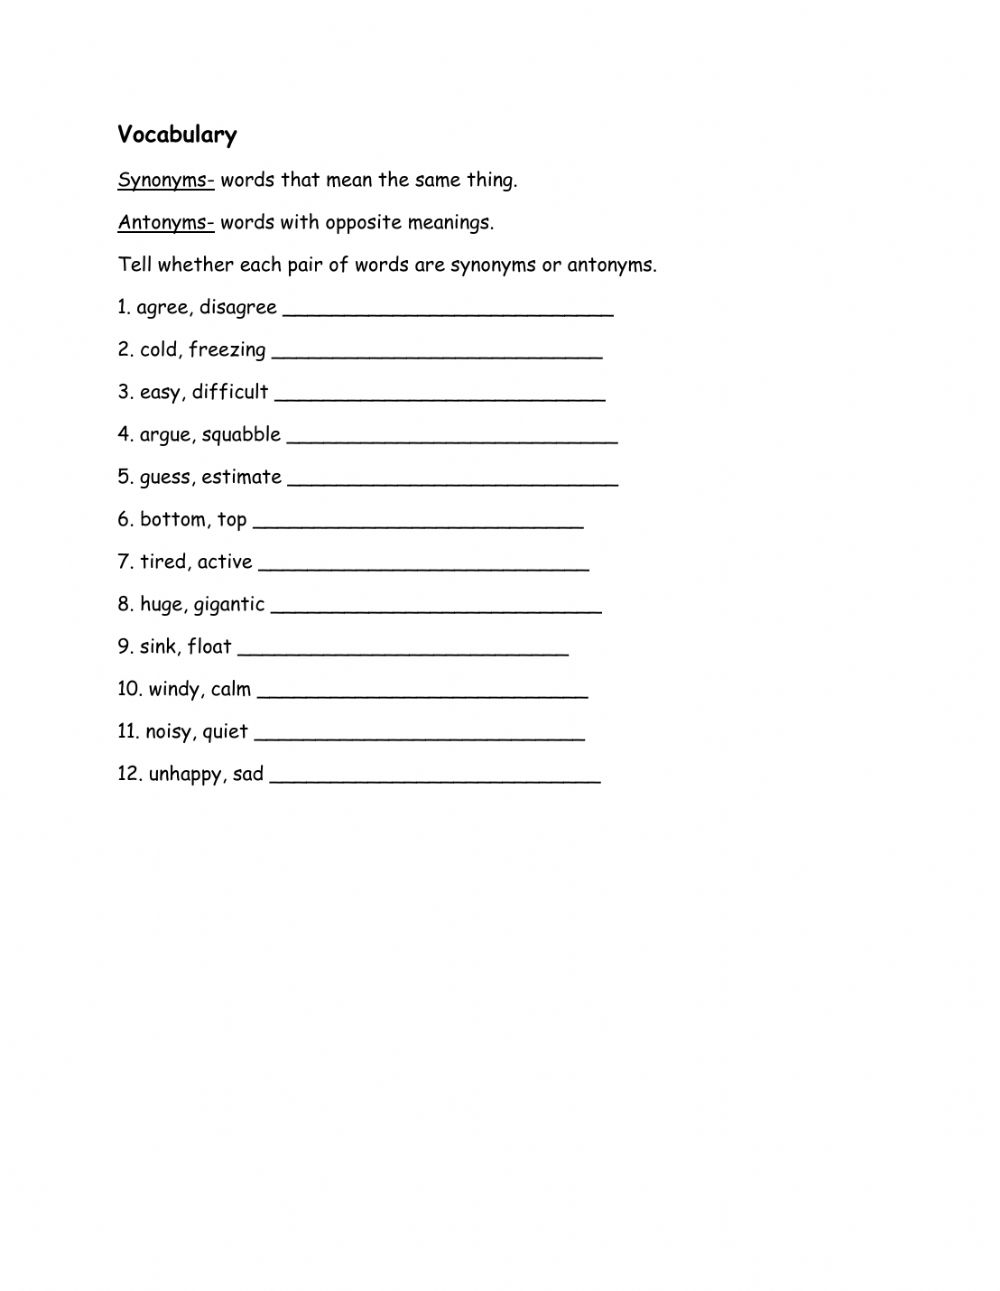 medium resolution of Synonyms and antonyms online worksheet for STD 1